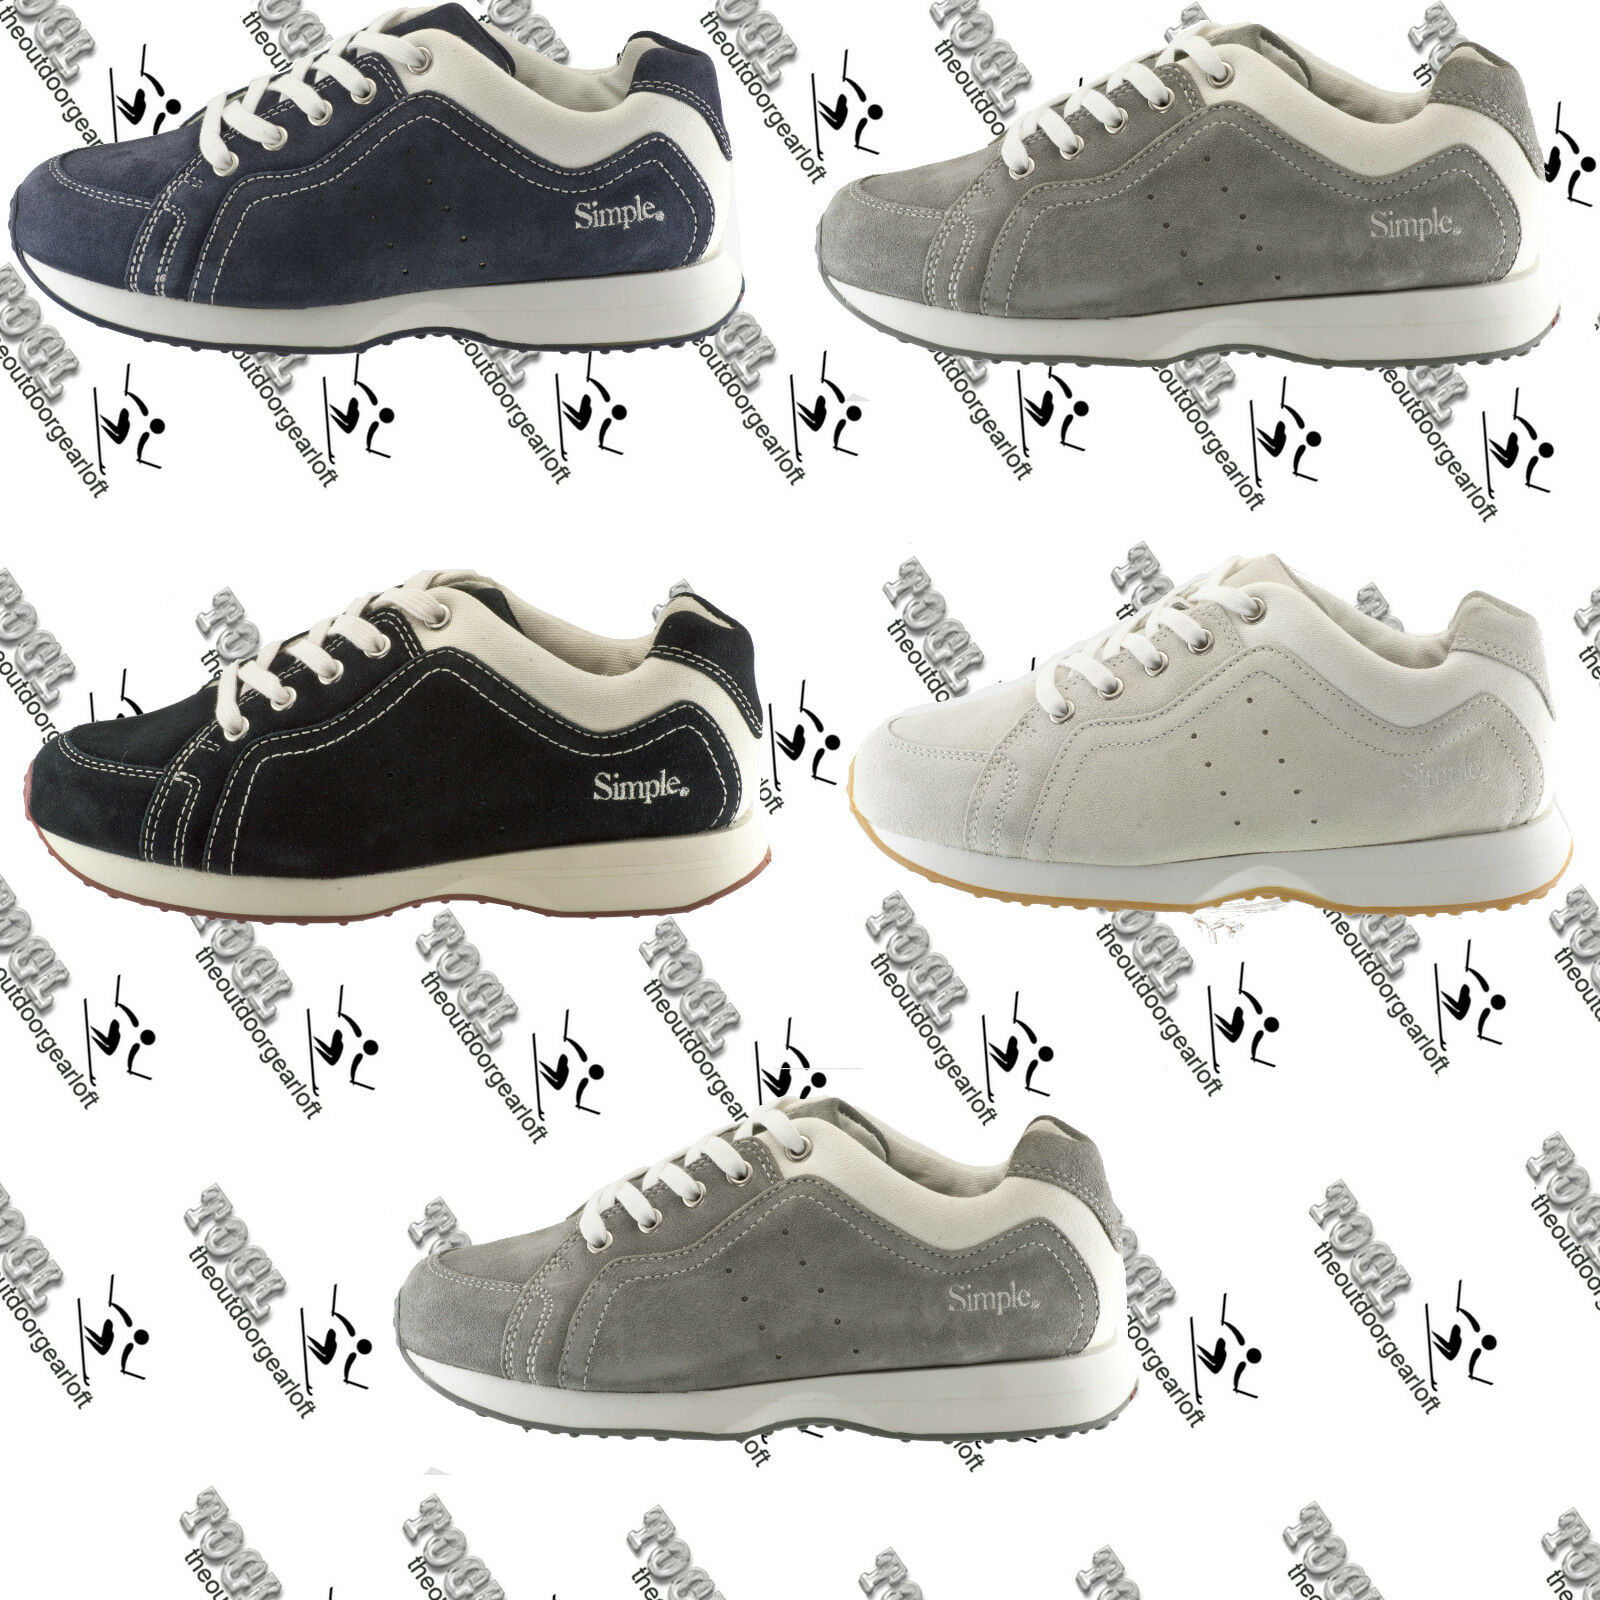 SIMPLE 2511 WOMENS NEW O.S. RUNNER RUNNING TRAIL SUEDE LACE UP SHOE  US7